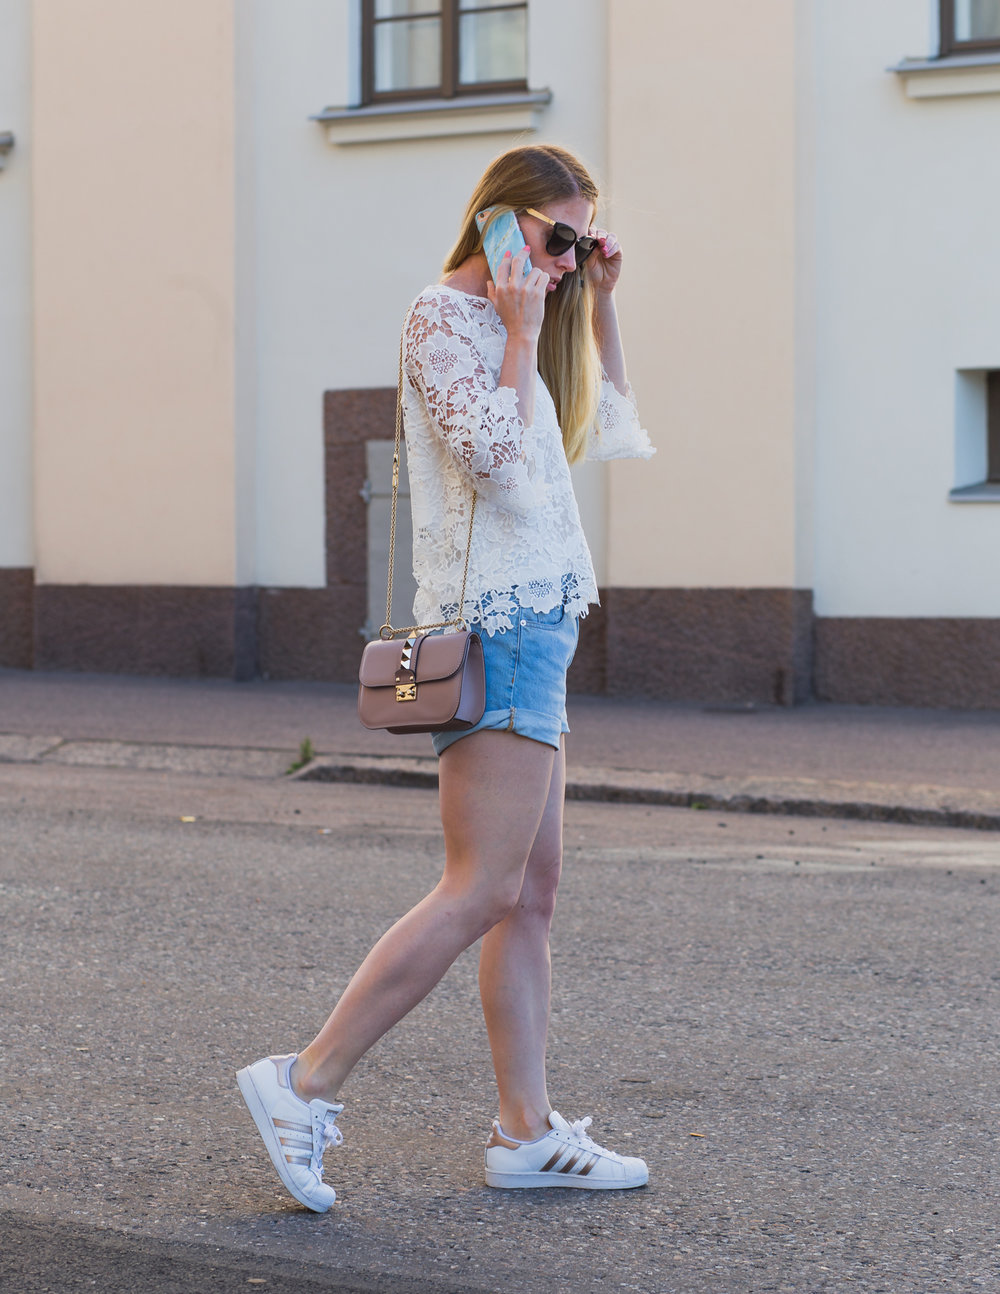 Shirt - KappAhl. Shorts - Pull&Bear. Shoes - Adidas. Bag - Valentino. Shades - Gucci. Phone case - Ideal of Sweden